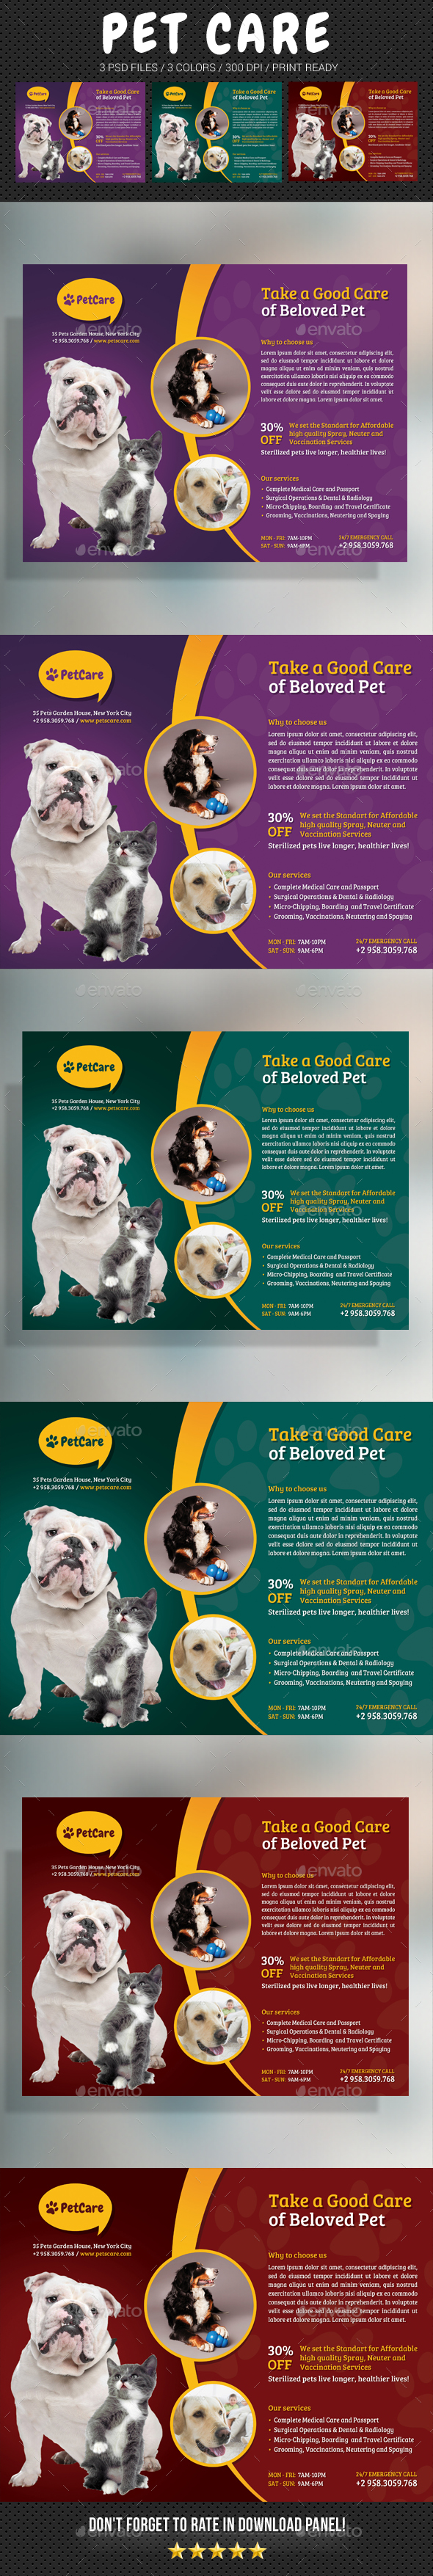 Pet Care Flyer - Corporate Flyers